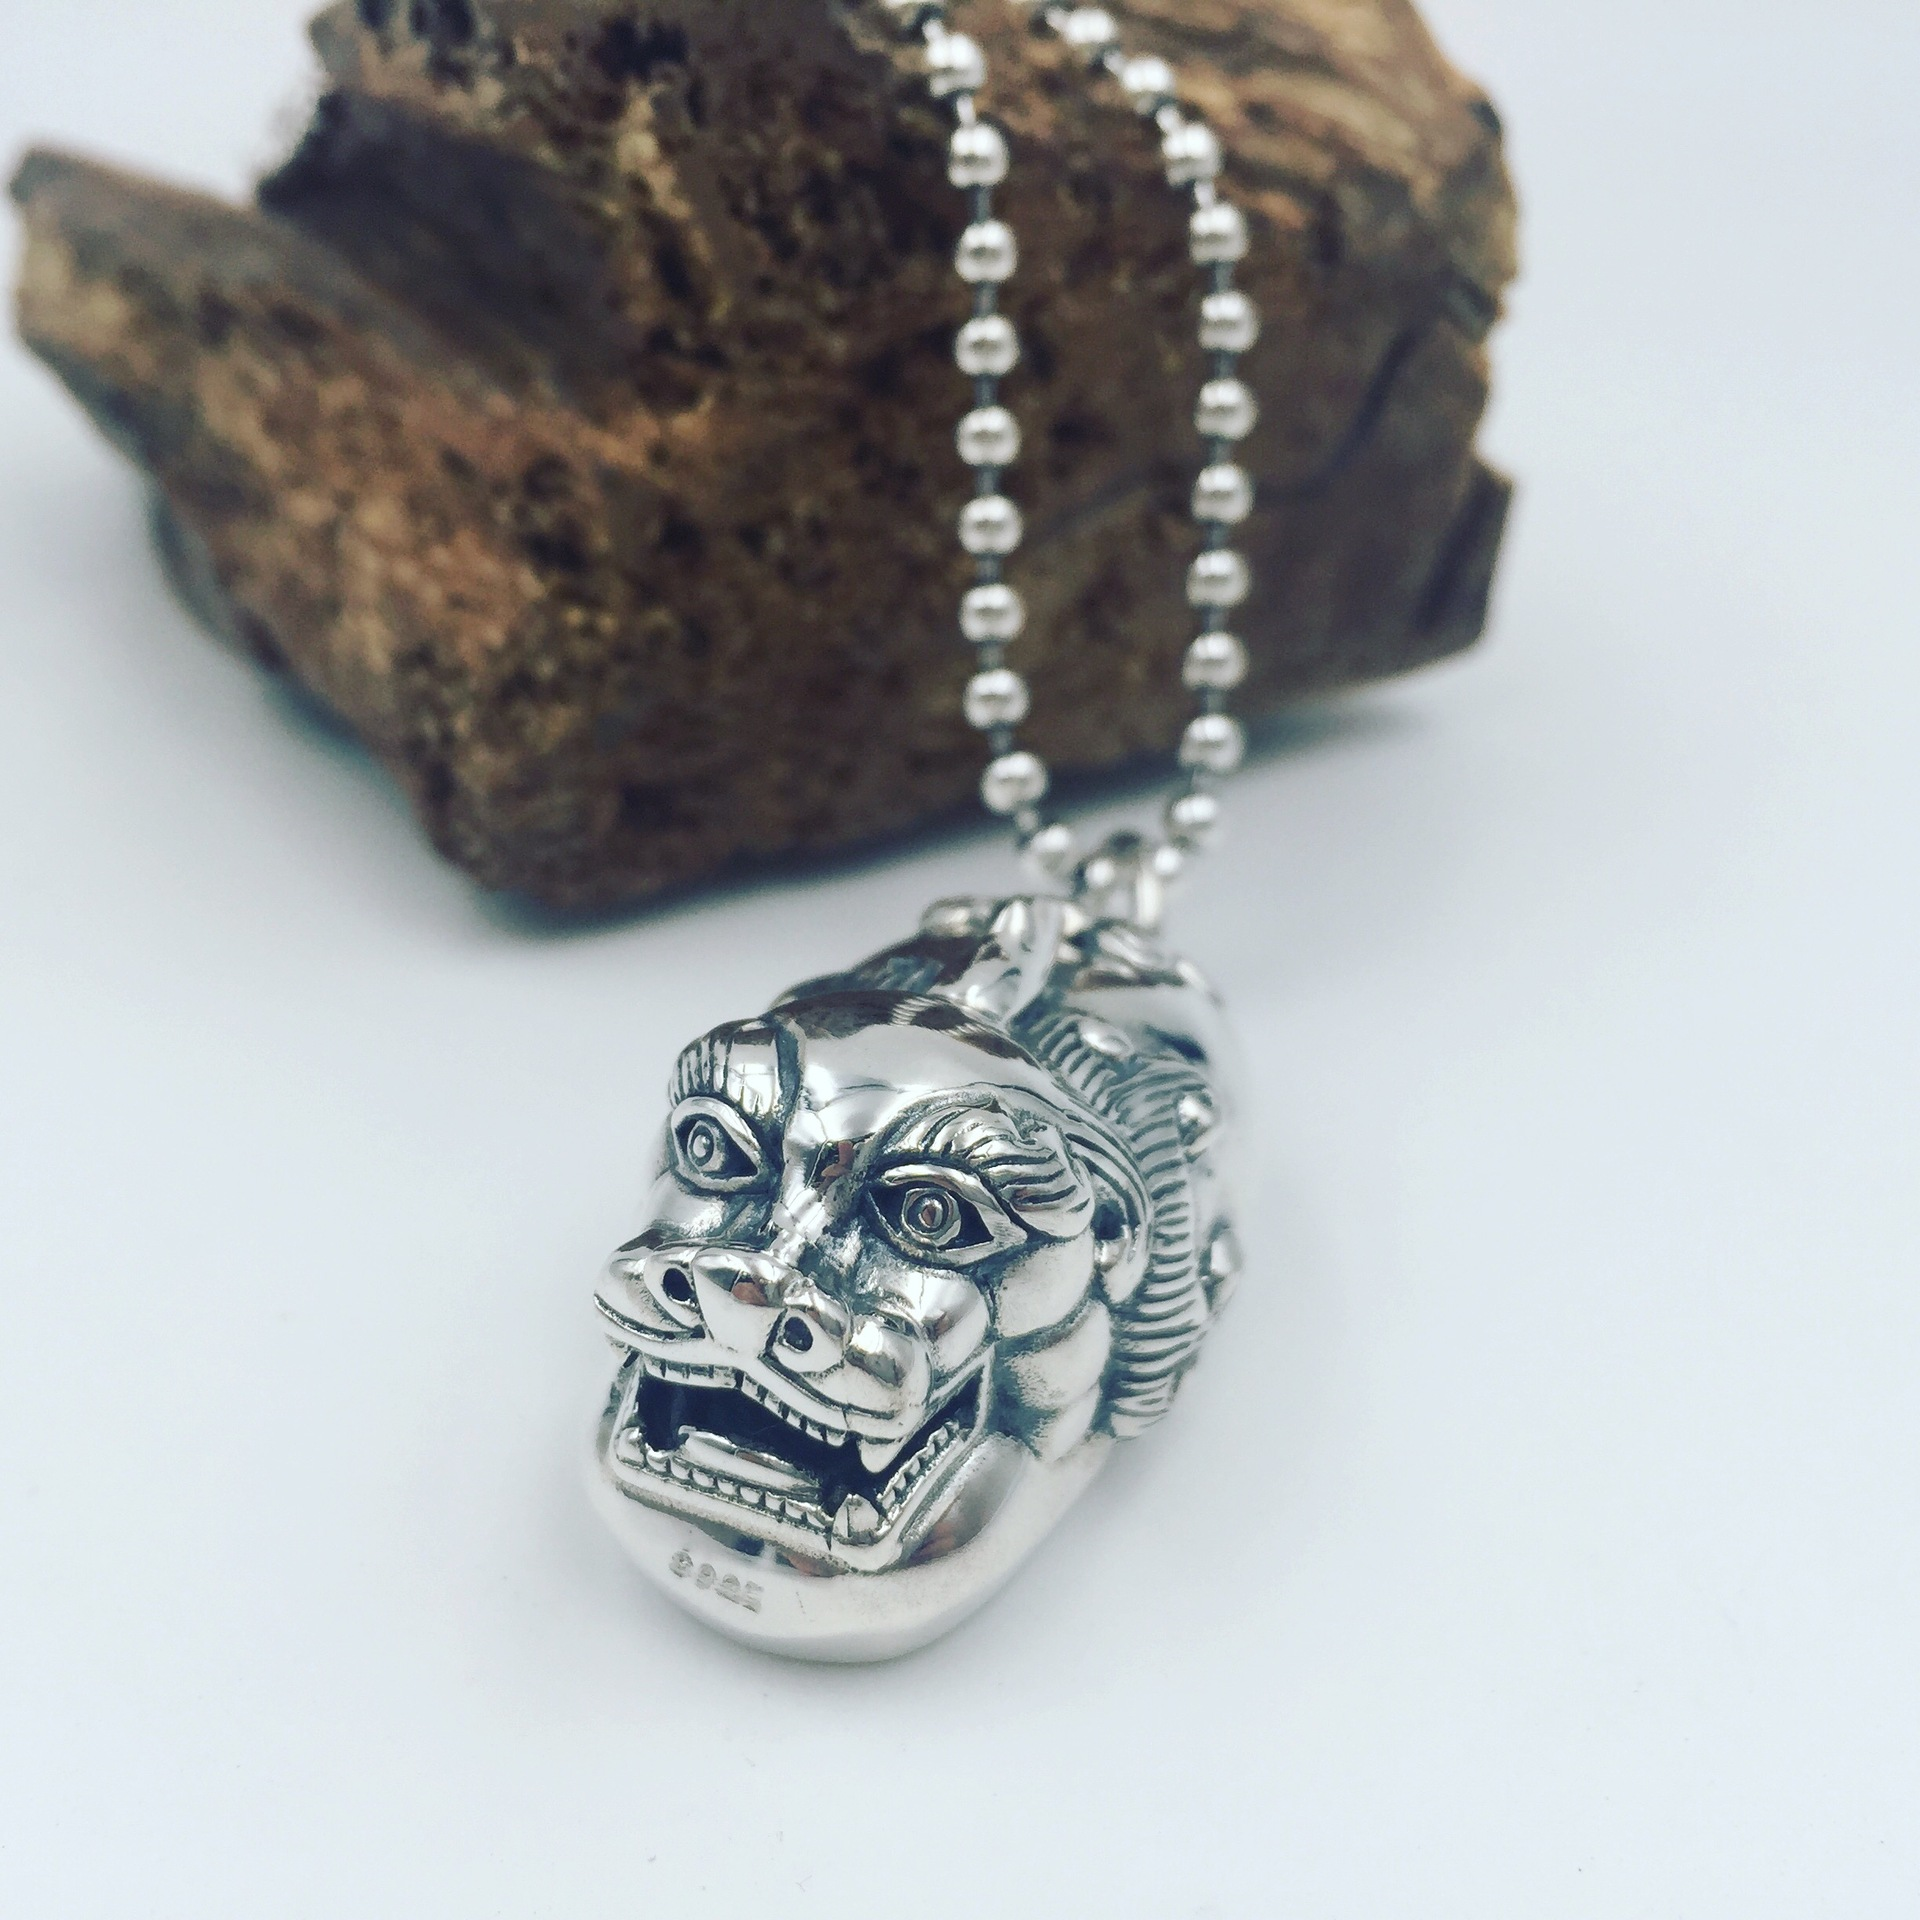 Direct manufacturers S925 silver silver ruishou Pixiu evil small ornaments silver pendant hanging pendant sweater chain genuine s925 sterling silver pendant silver abacus activities auspicious clouds sweater chain pendant factory direct